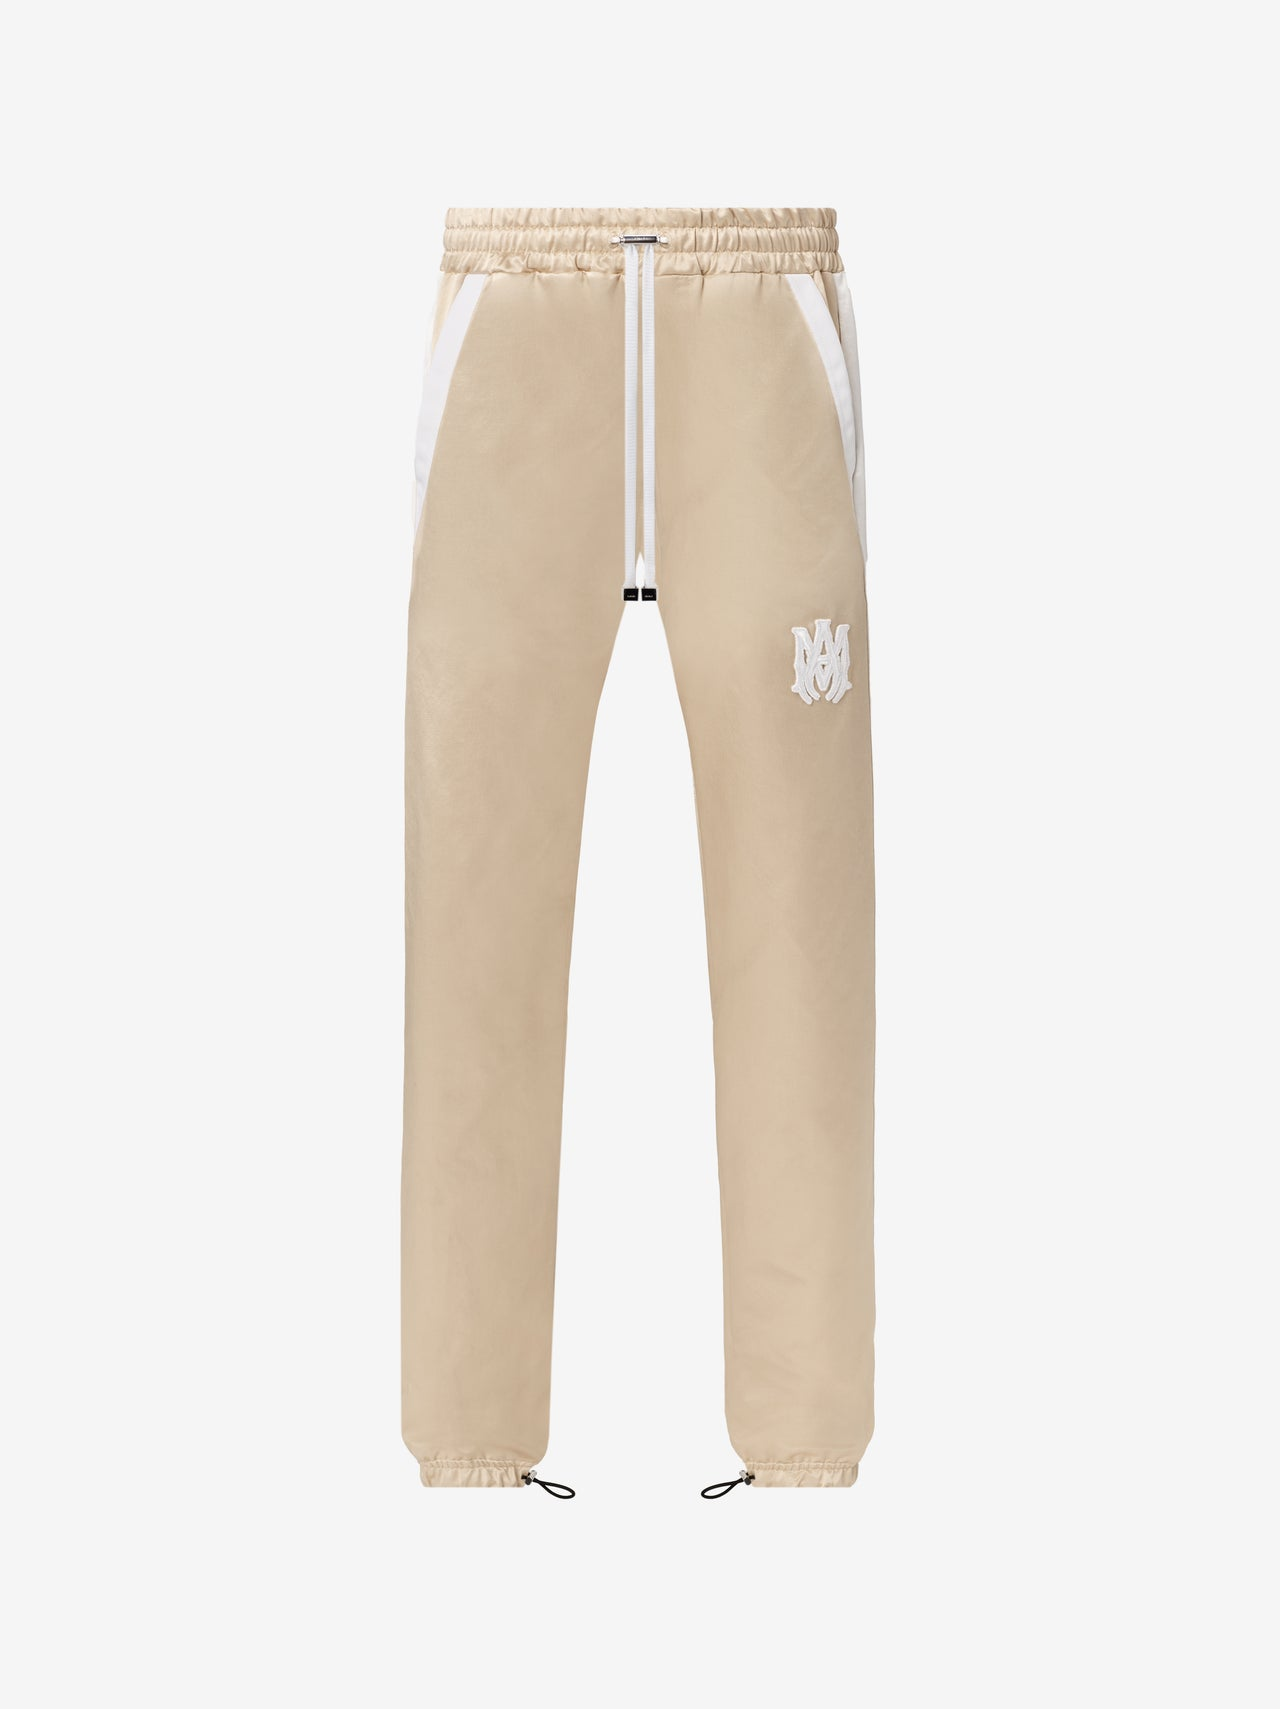 DRAWSTRING TRACKPANT - CHAMPAGNE / WHITE